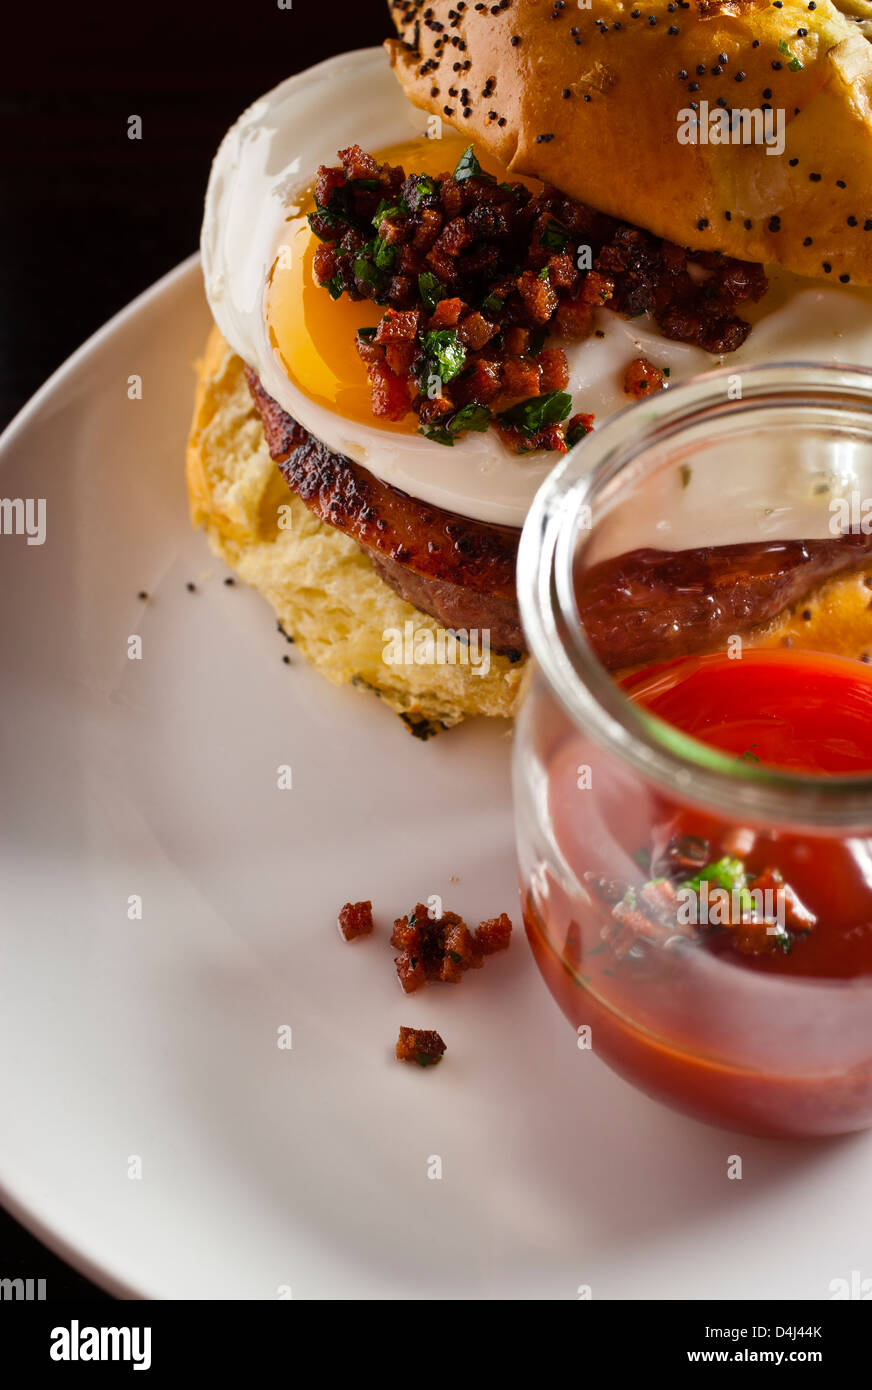 Burger Royal, with sunny side up egg, ham and ketchup prepared by Rob Ruban, Executive Chef of Crossbar in New York, - Stock Image